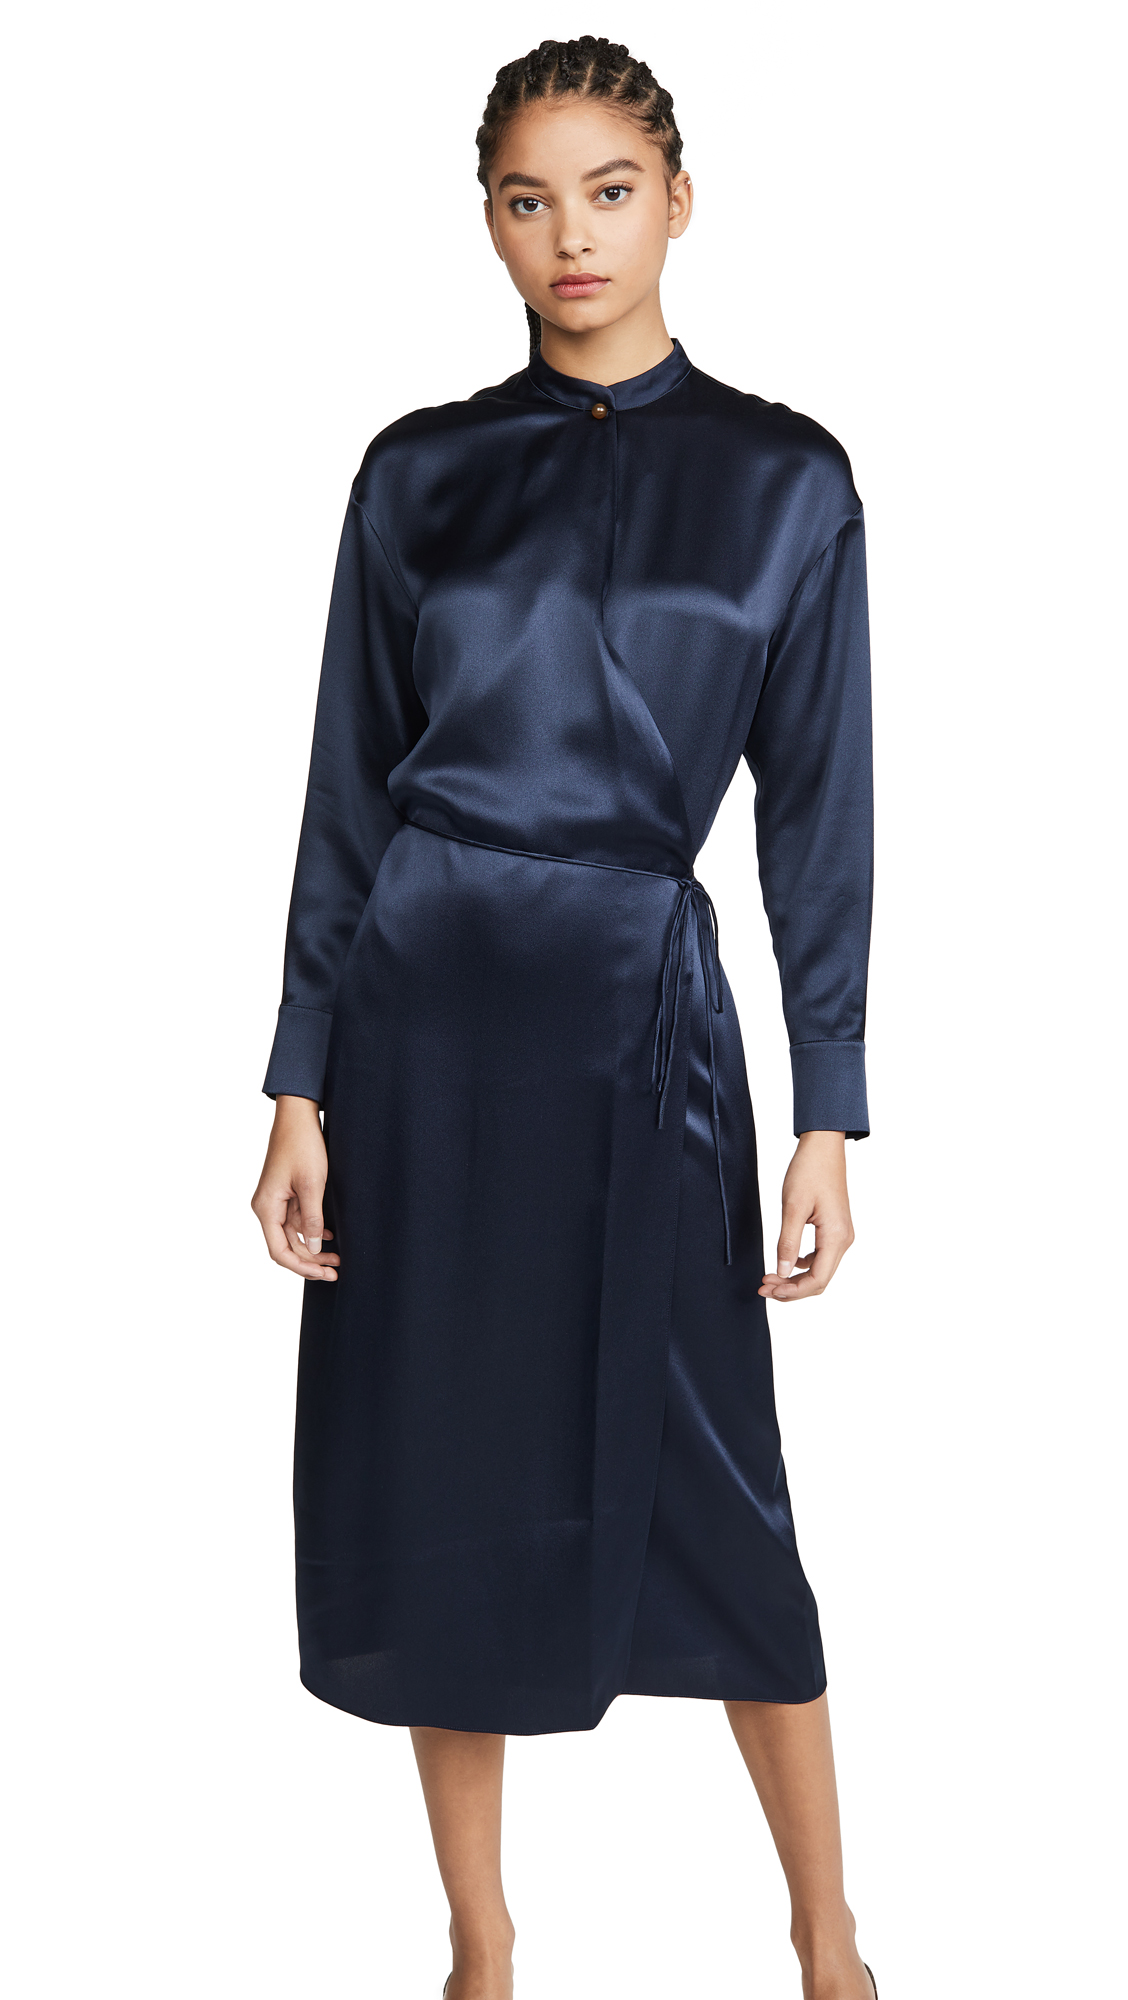 Vince Long Sleeve Wrap Dress - 40% Off Sale